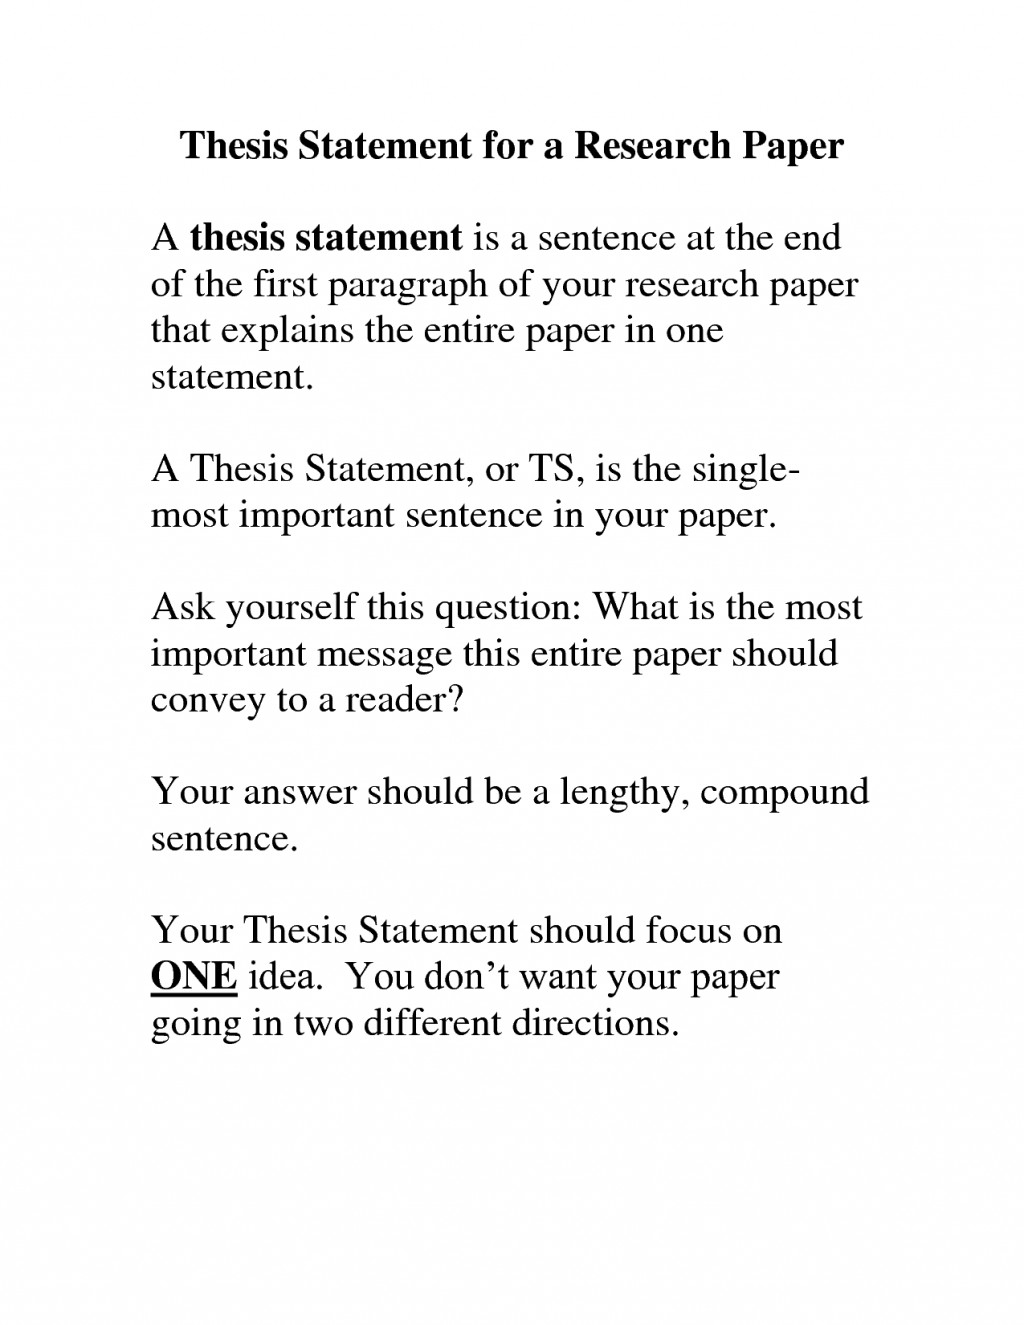 001 Research Paper 5392345319 English Essay Writing Service Thesis Statement Examples For Unusual Papers On Abortion Free Large